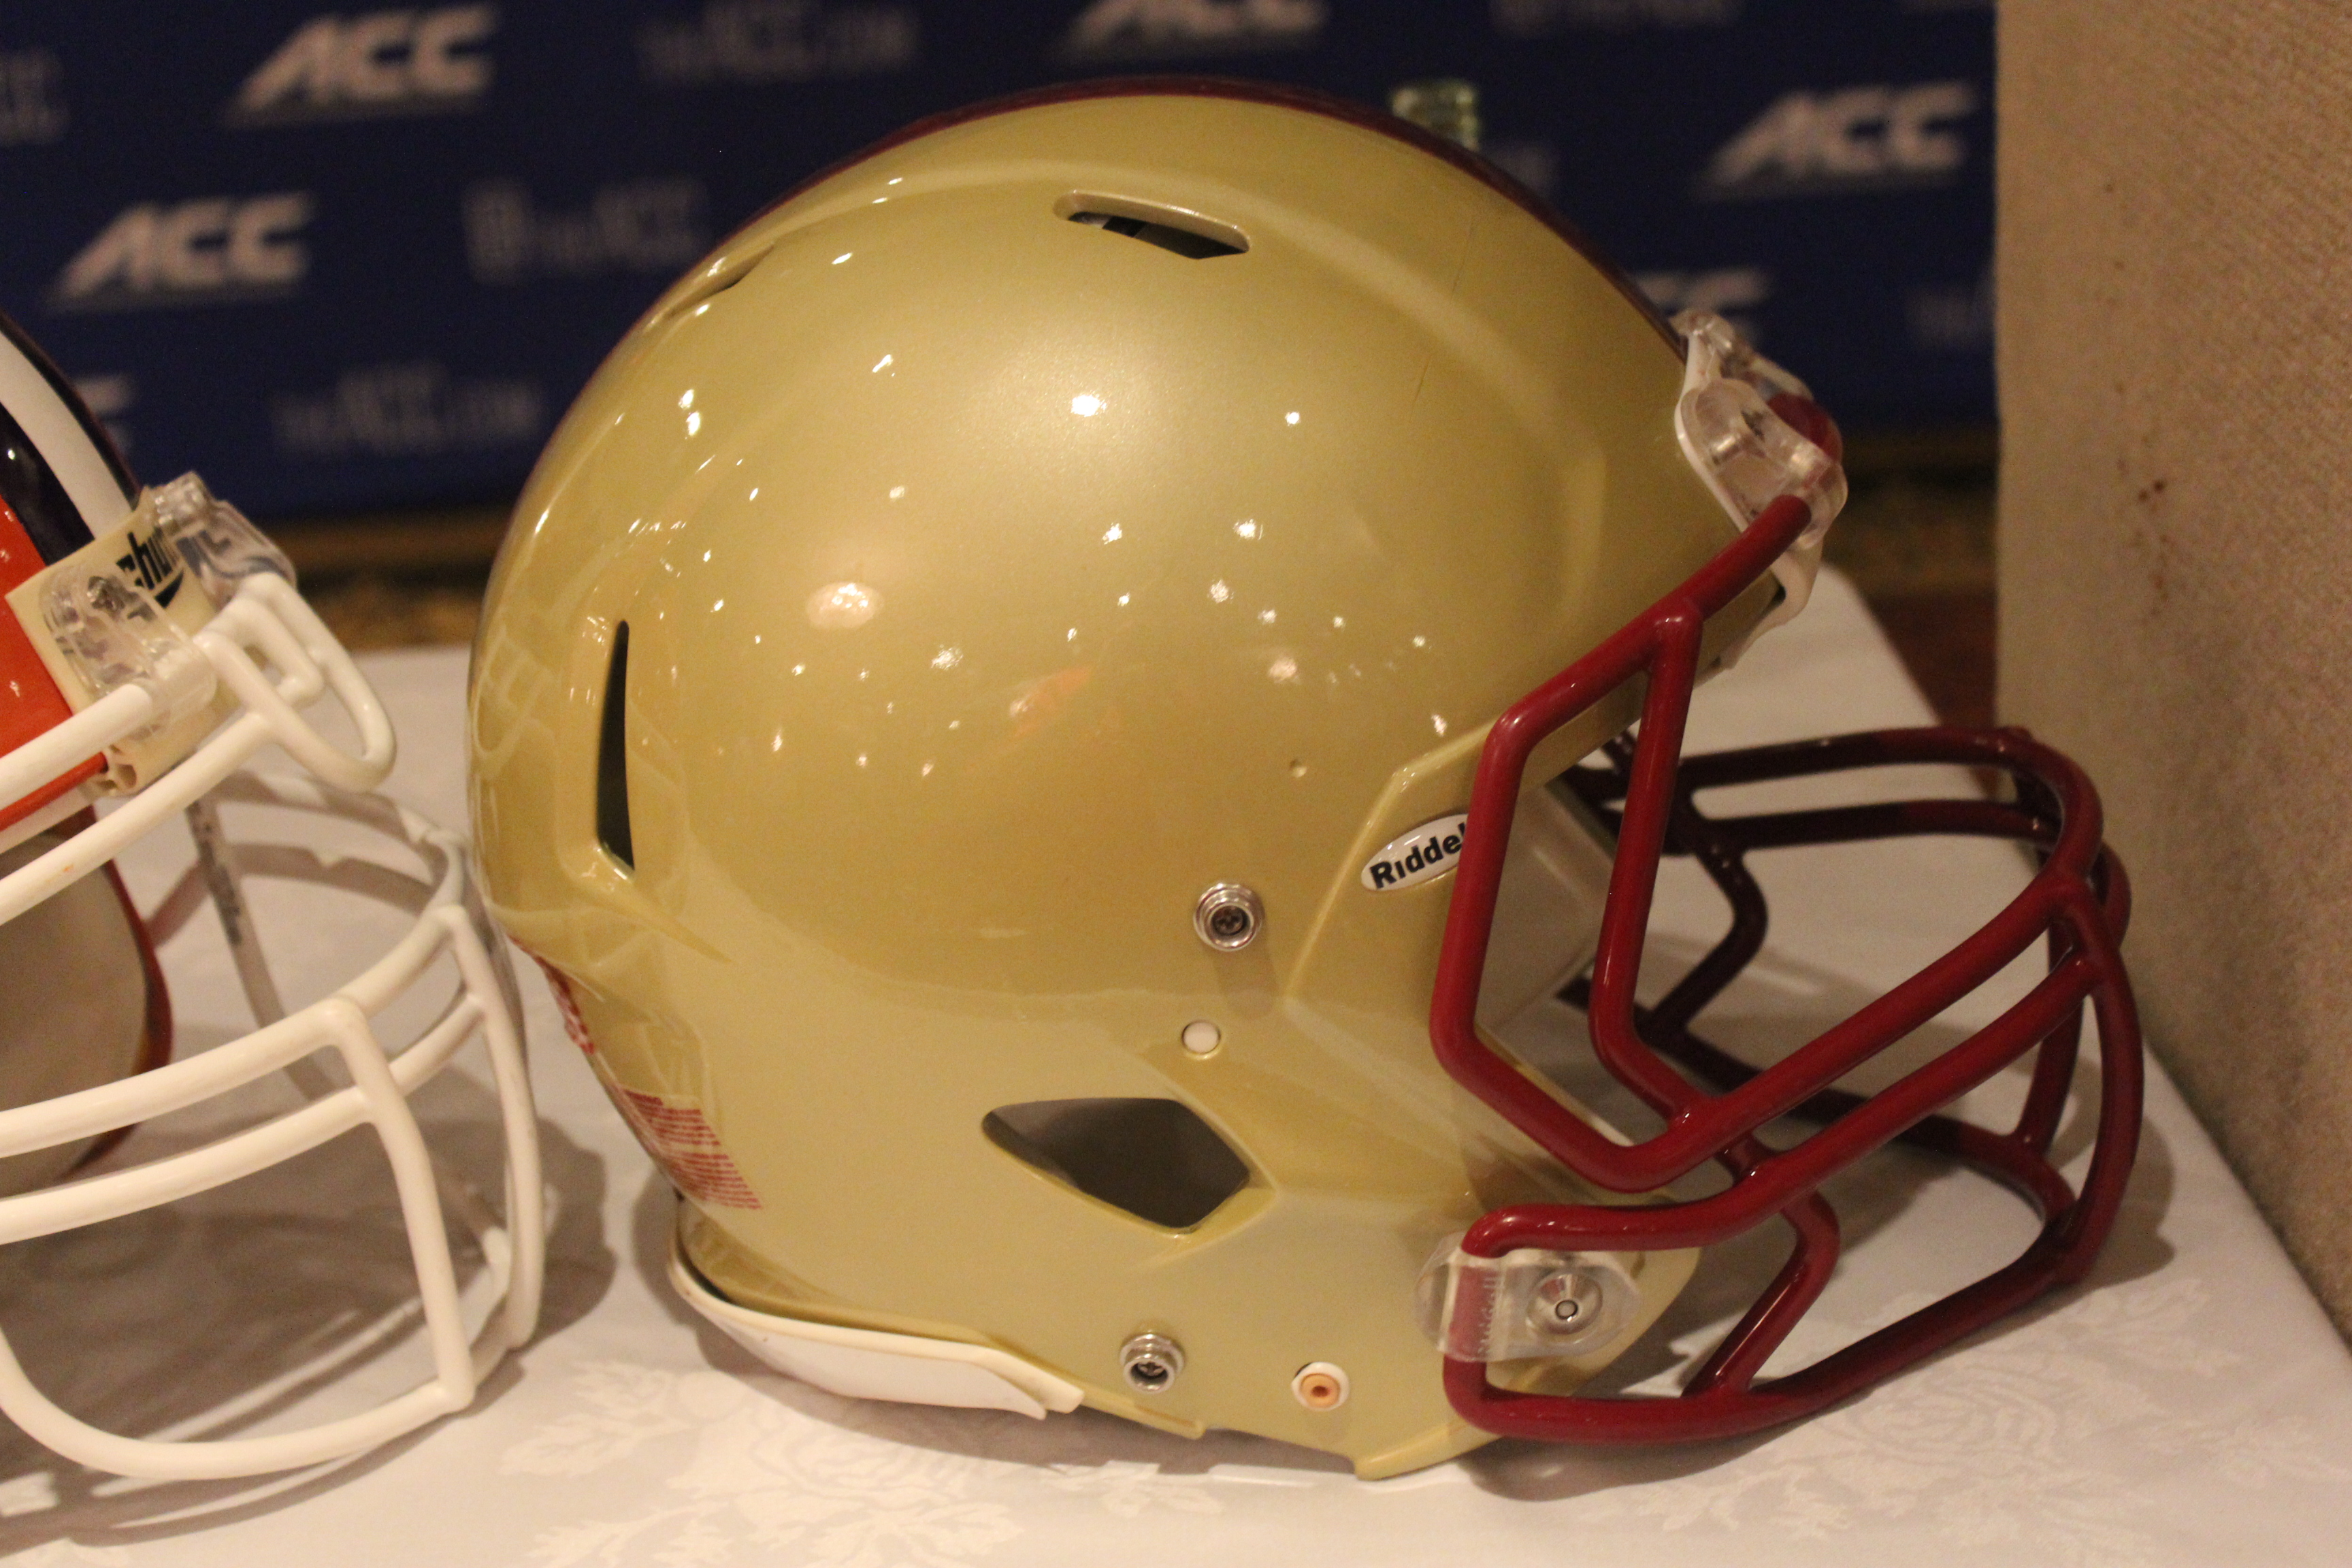 Boston College Helmet 2014 ACC Kickoff Photo by Mark Blankenbaker